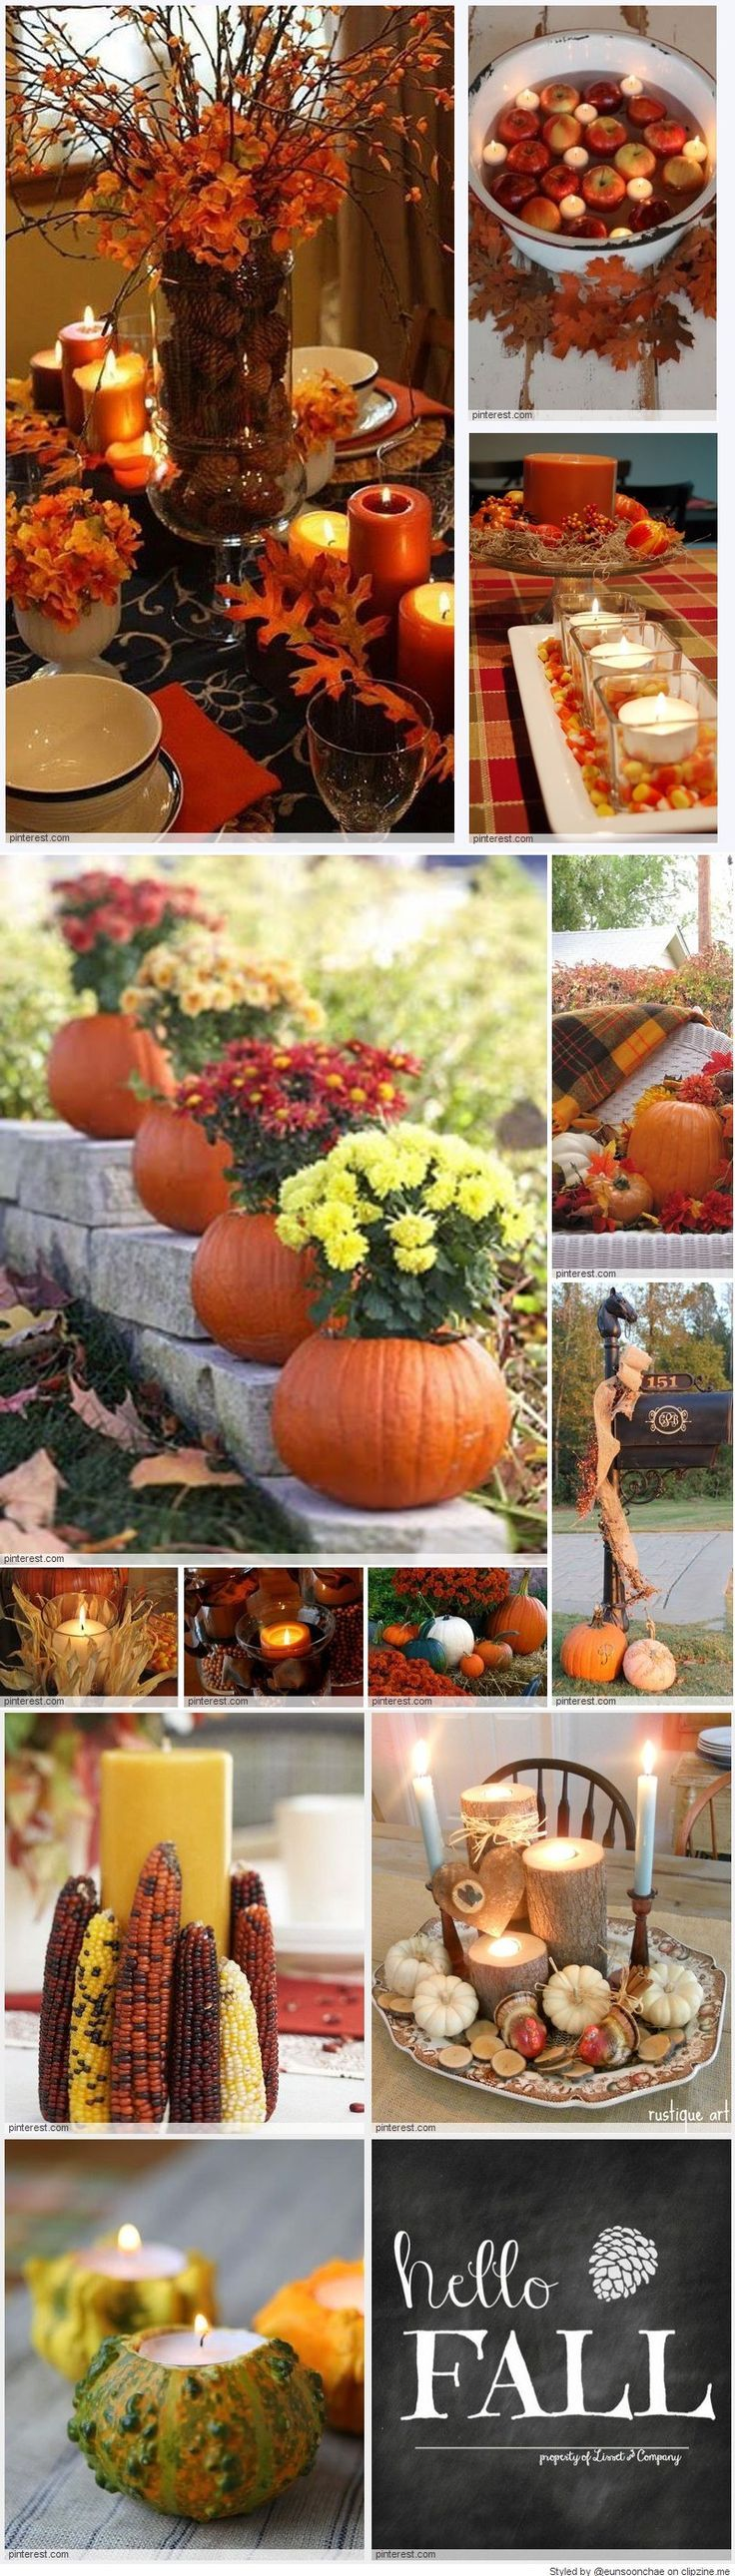 Fall Decorating Ideas that you can use for all your Thanksgiving festivities and family parties. These are beautiful fall tablescapes. Great Thanksgiving ideas.